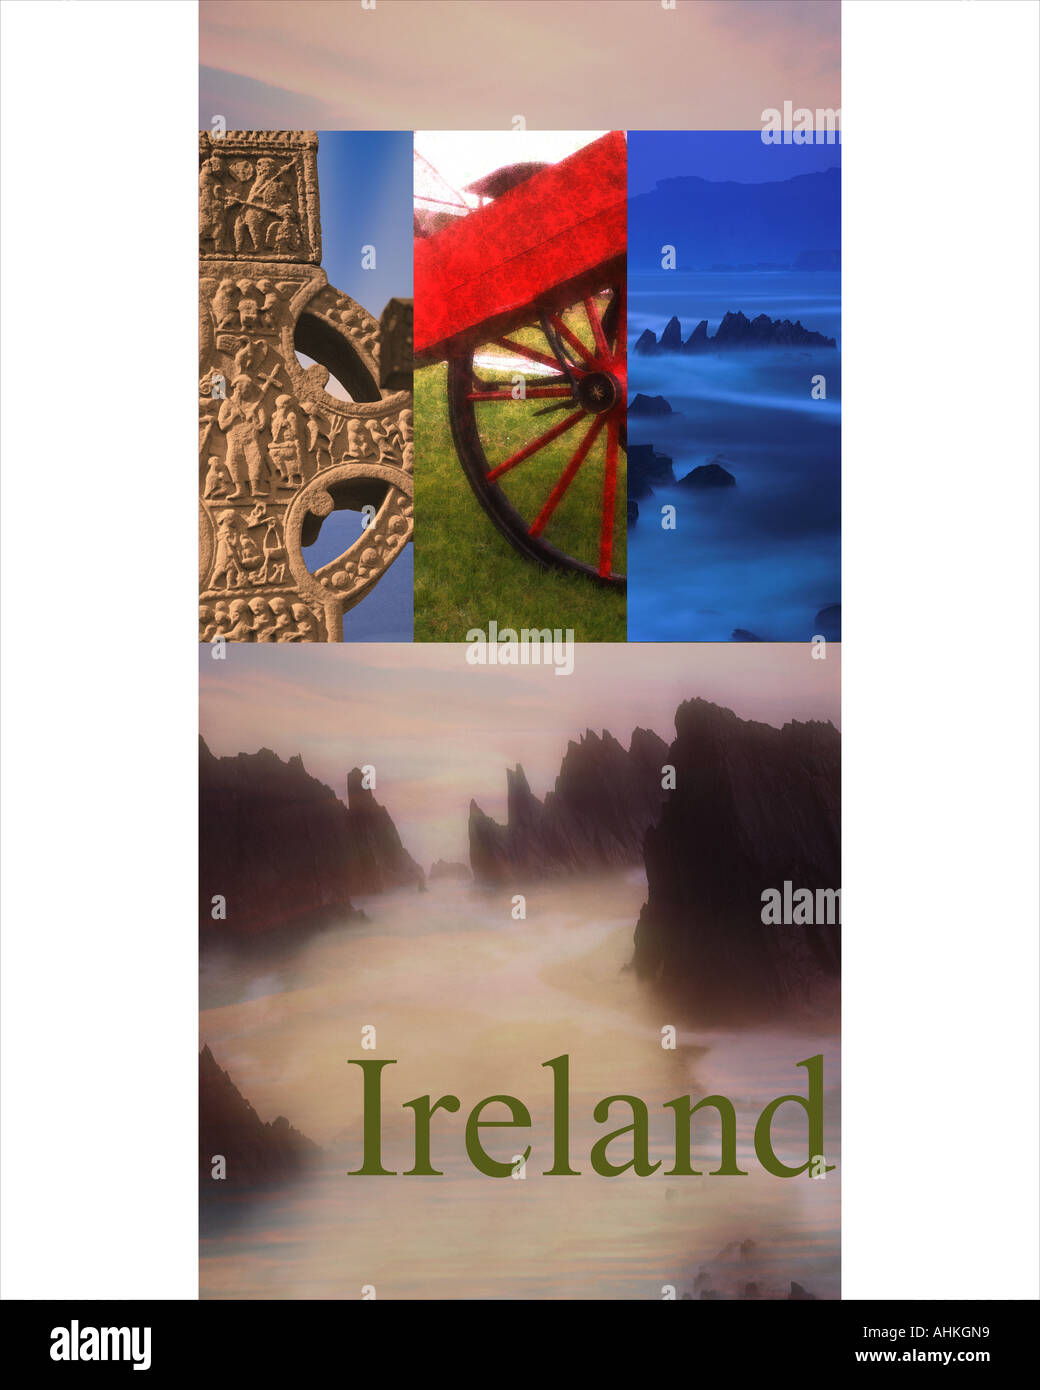 TRAVEL CONCEPT: Republic of Ireland (Eire) - Stock Image